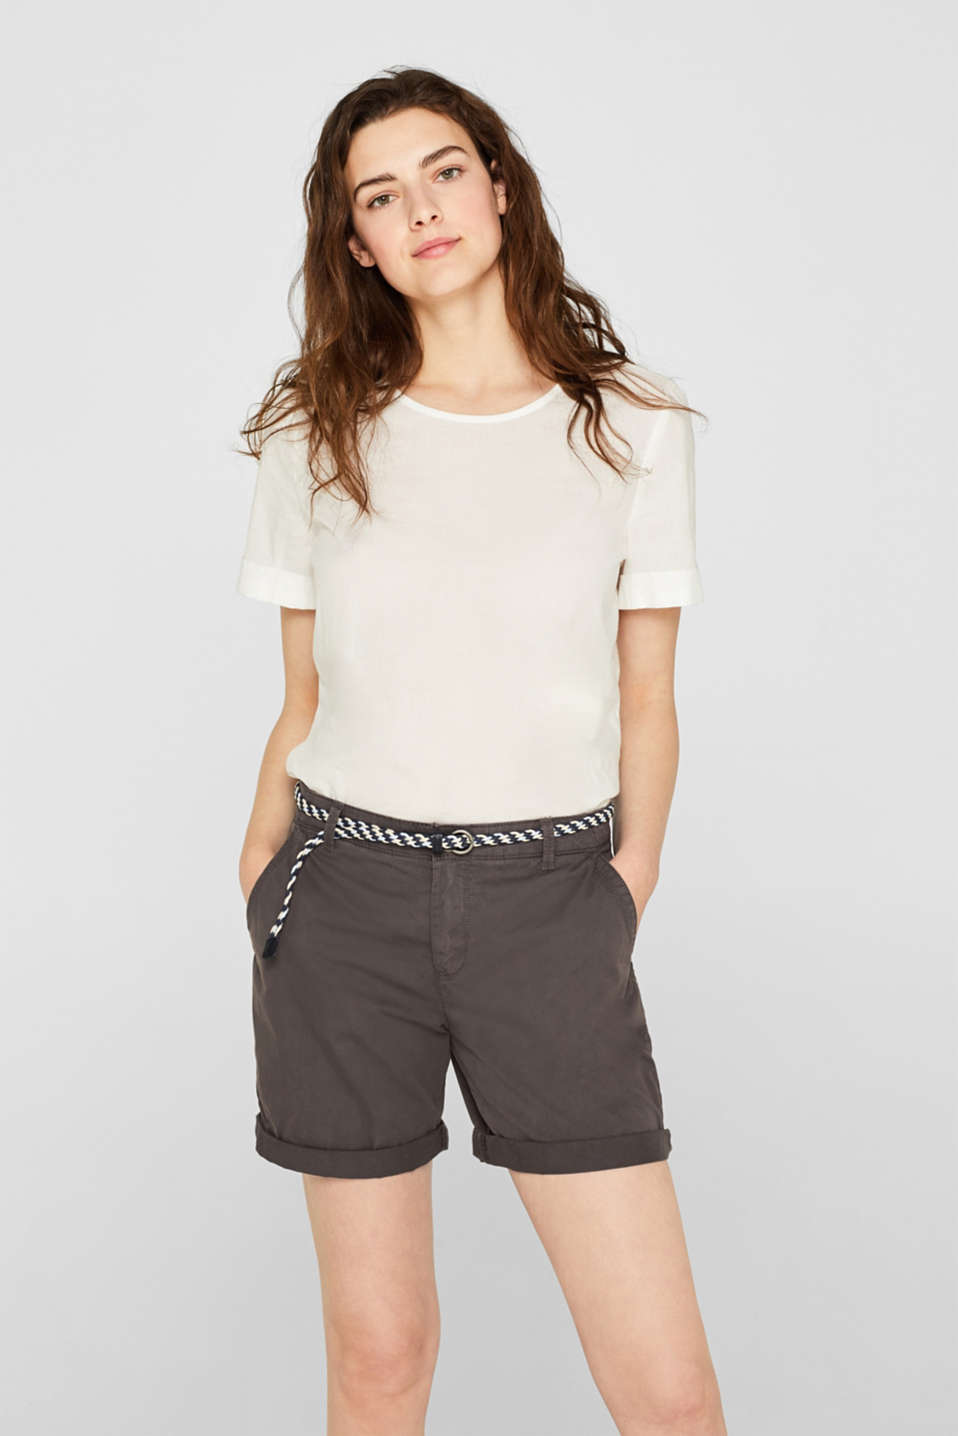 Esprit - Short in een garment-washed look, 100% katoen